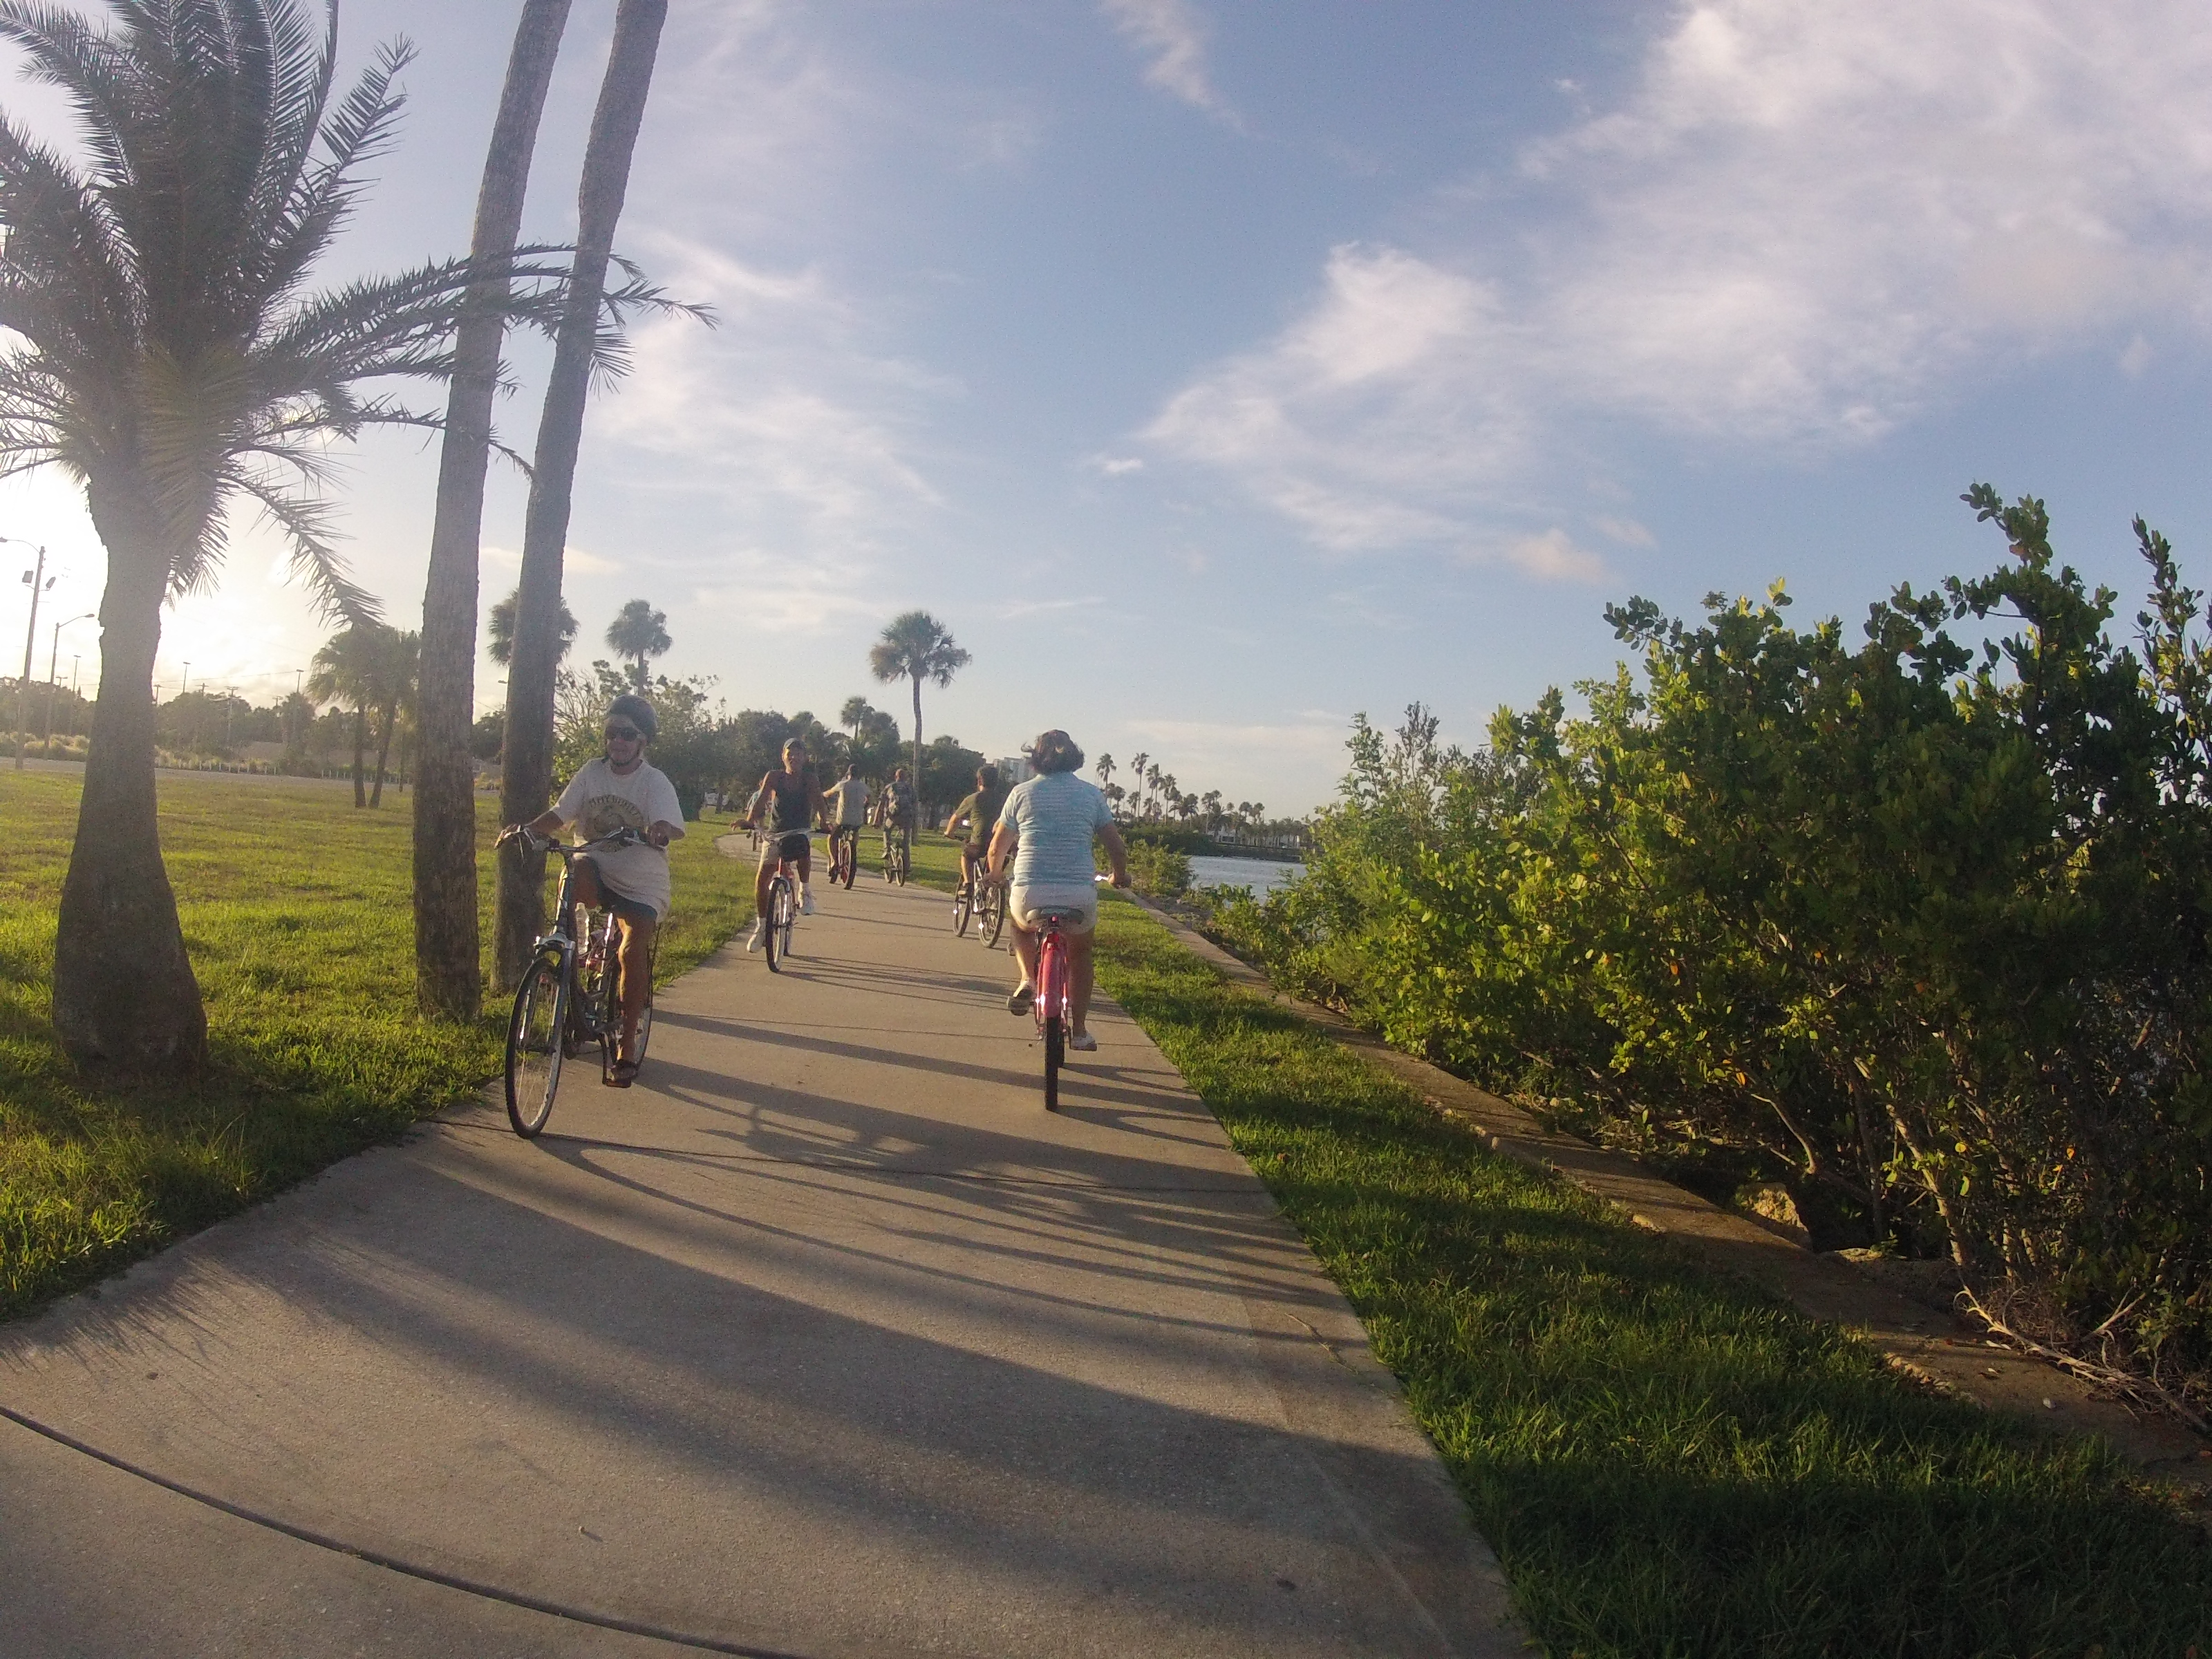 Cyclists along the Sweetheart Trail in Daytona Beach